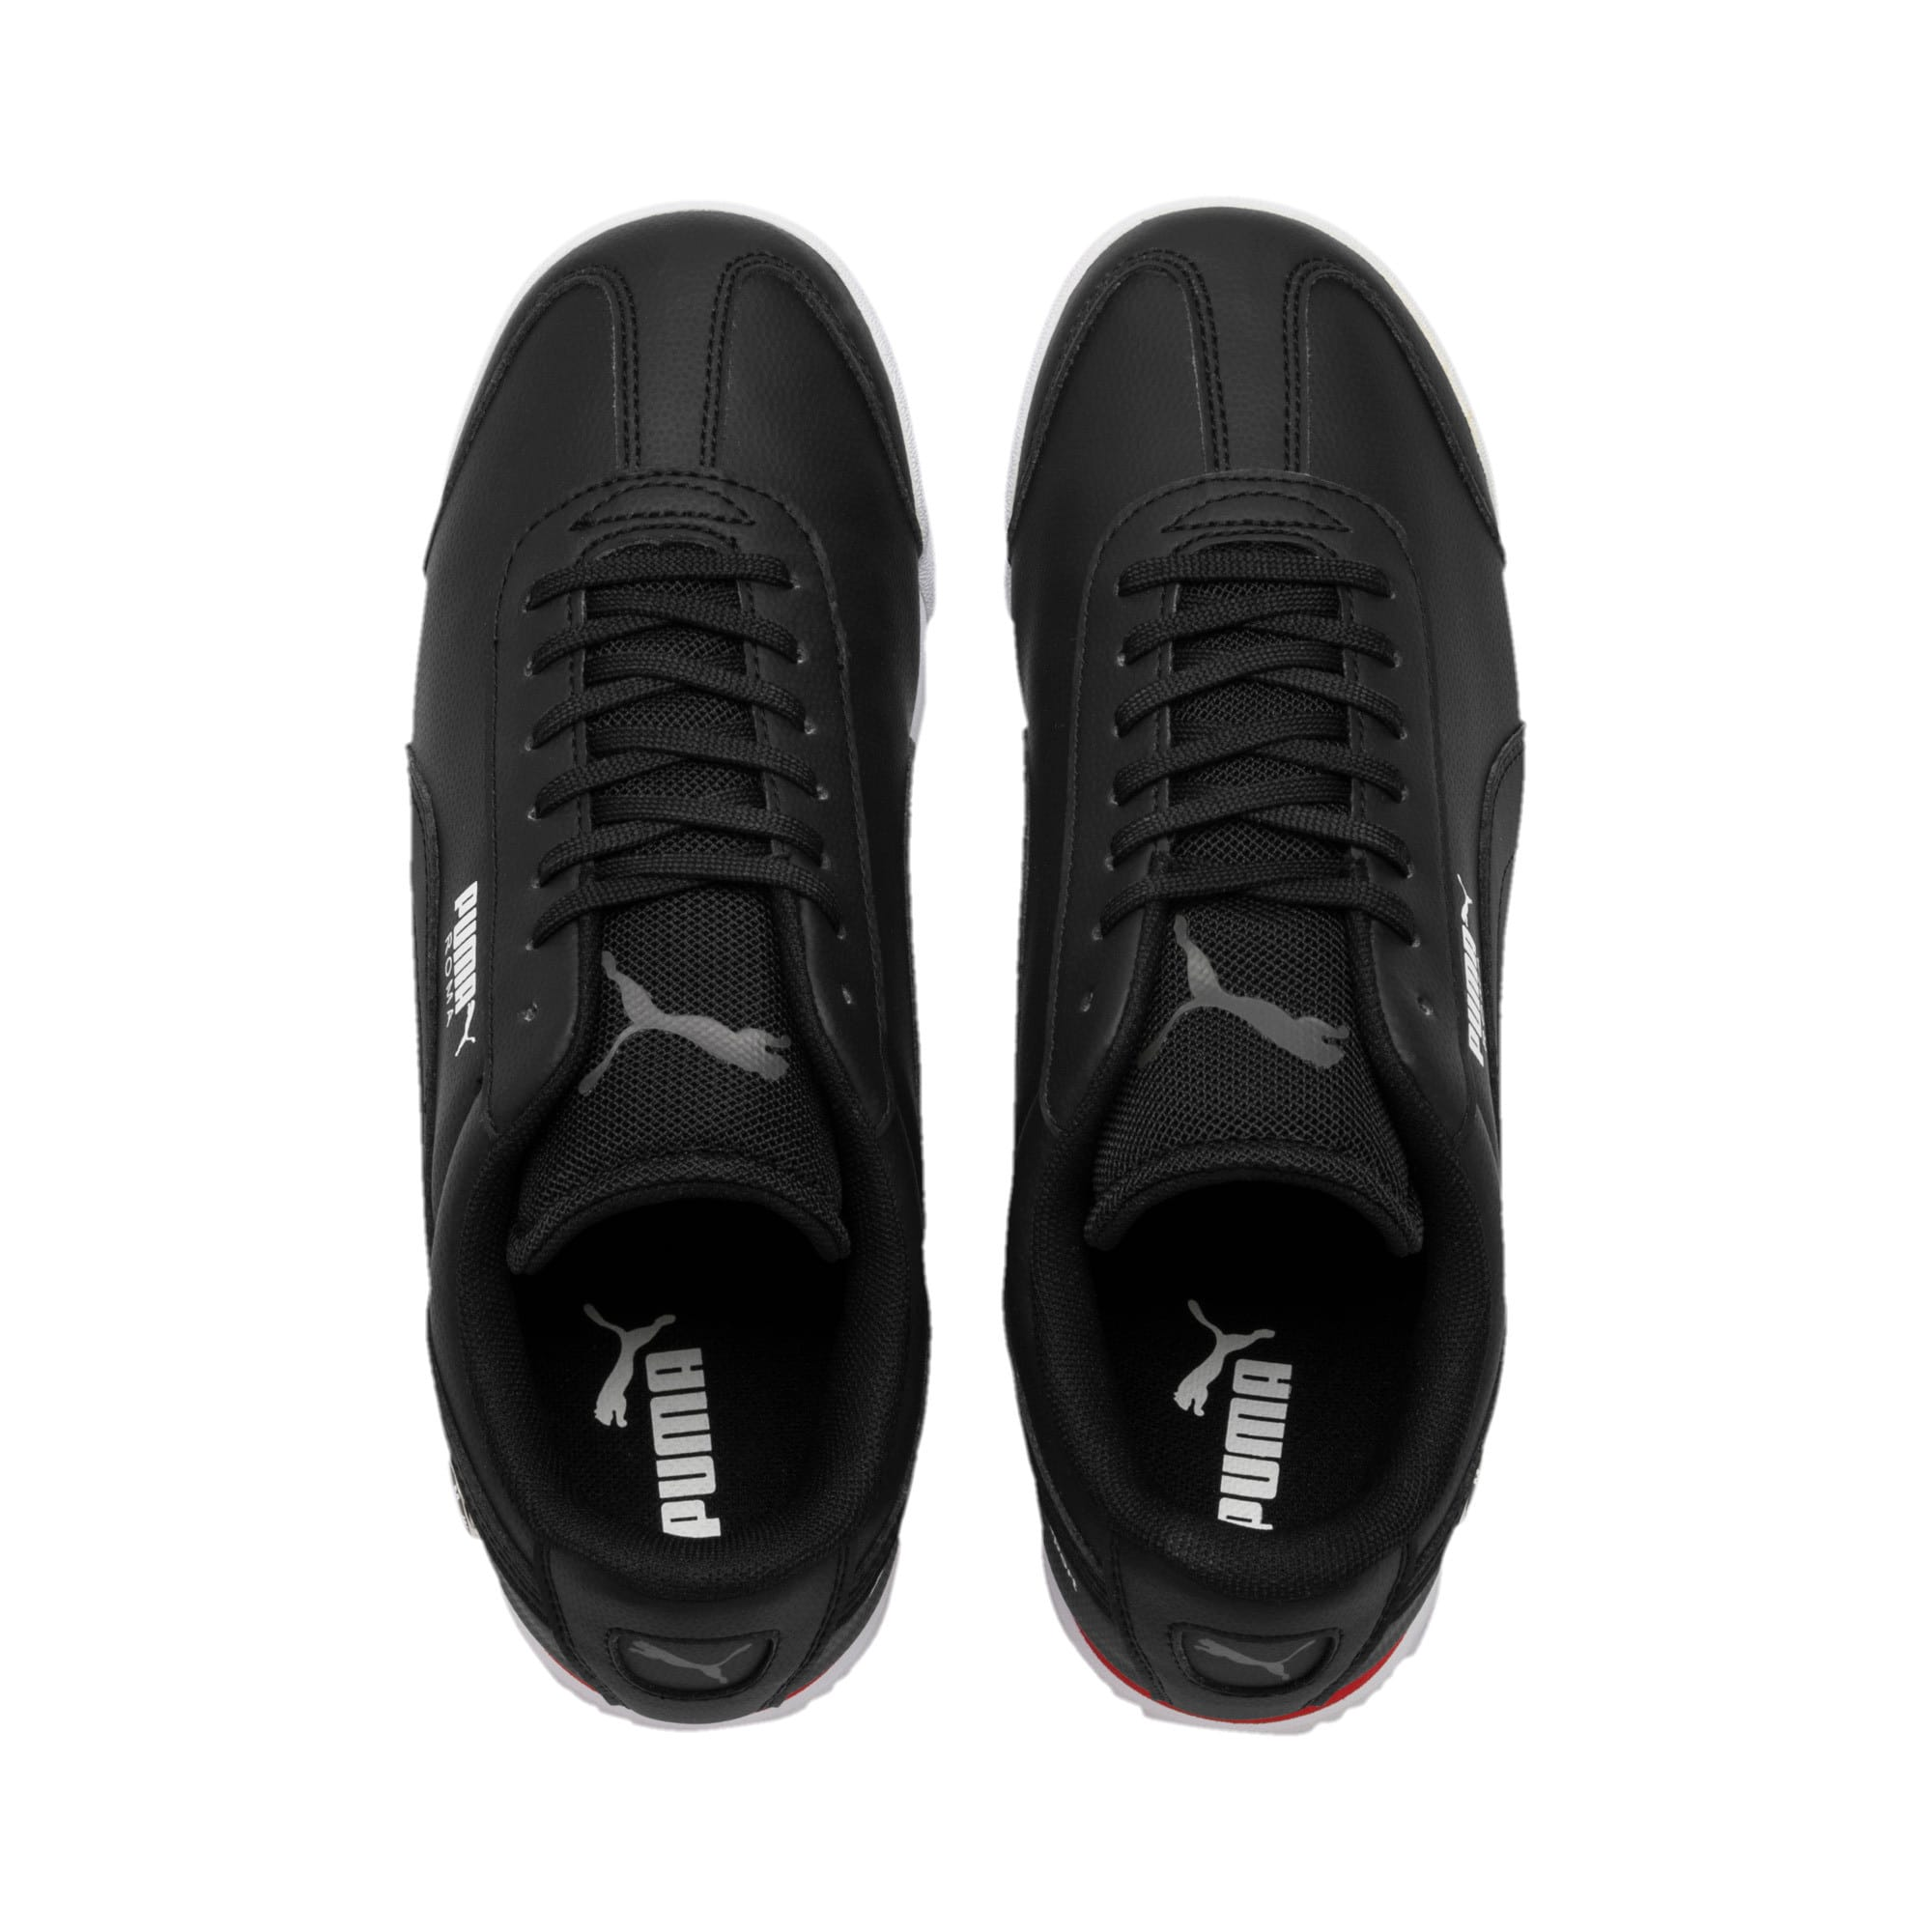 Thumbnail 6 of BMW Motorsport Roma Youth Trainers, Puma Black-Puma Black, medium-IND